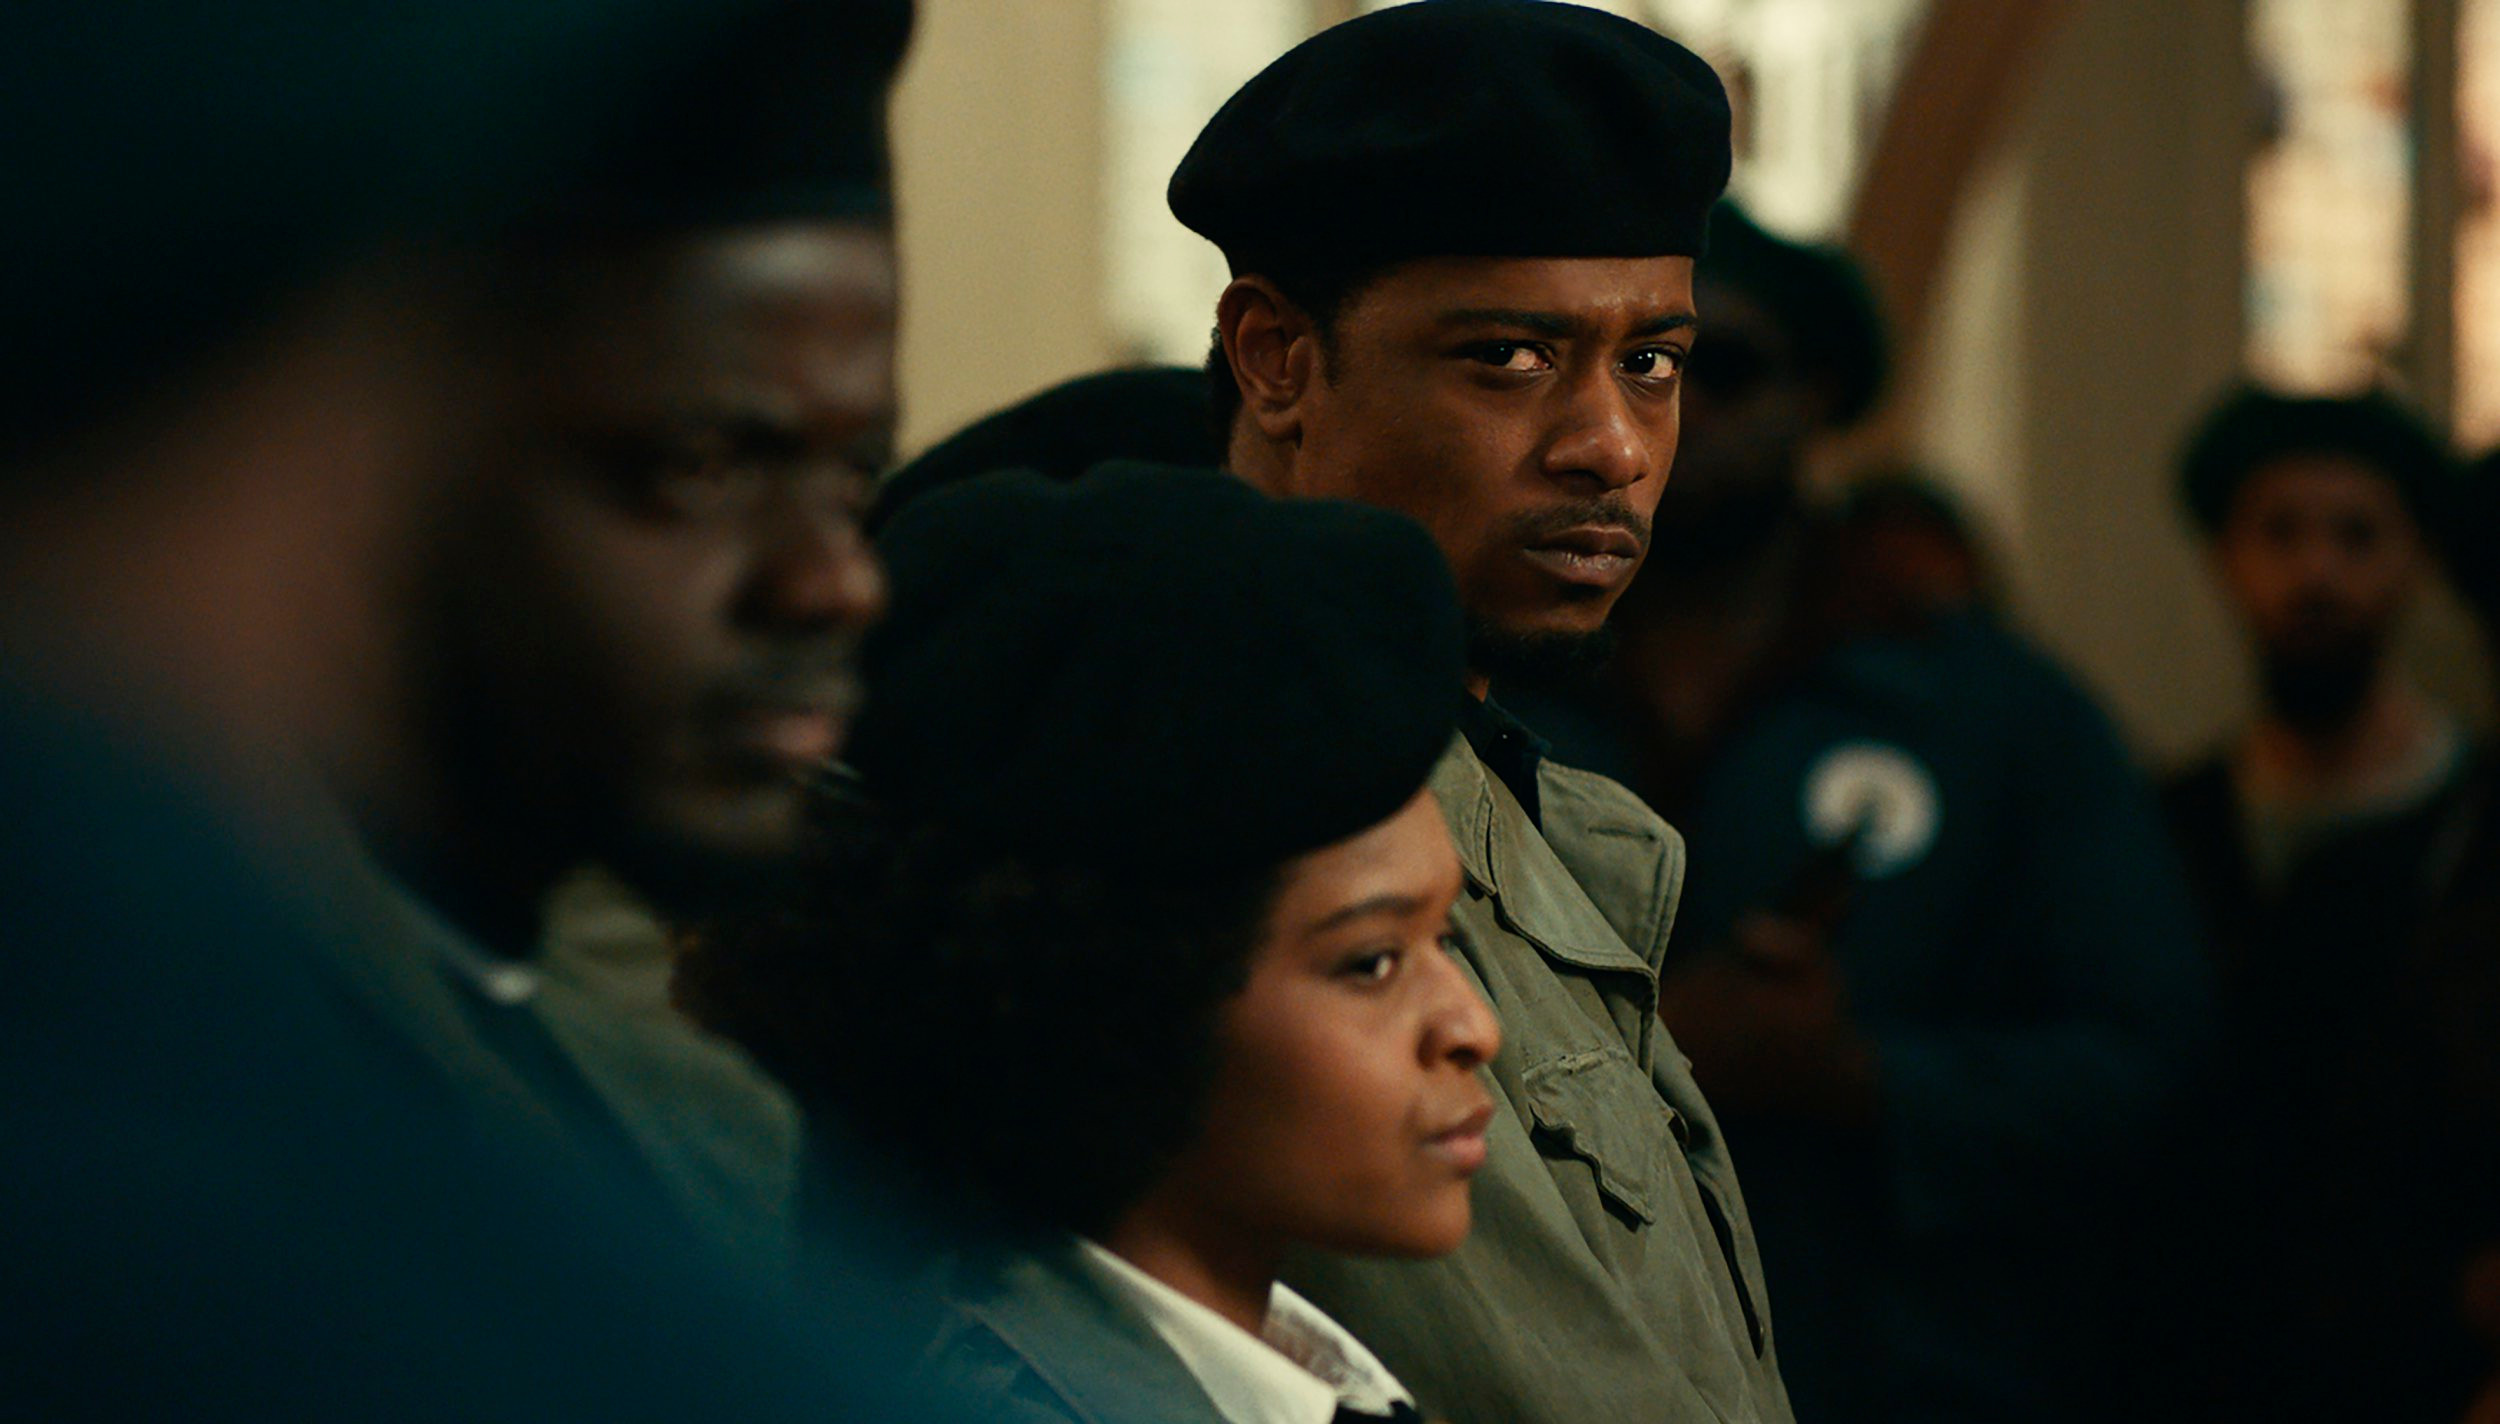 LaKeith Stanfield initially didn't want to play William O'Neal in Judas and the Black Messiah